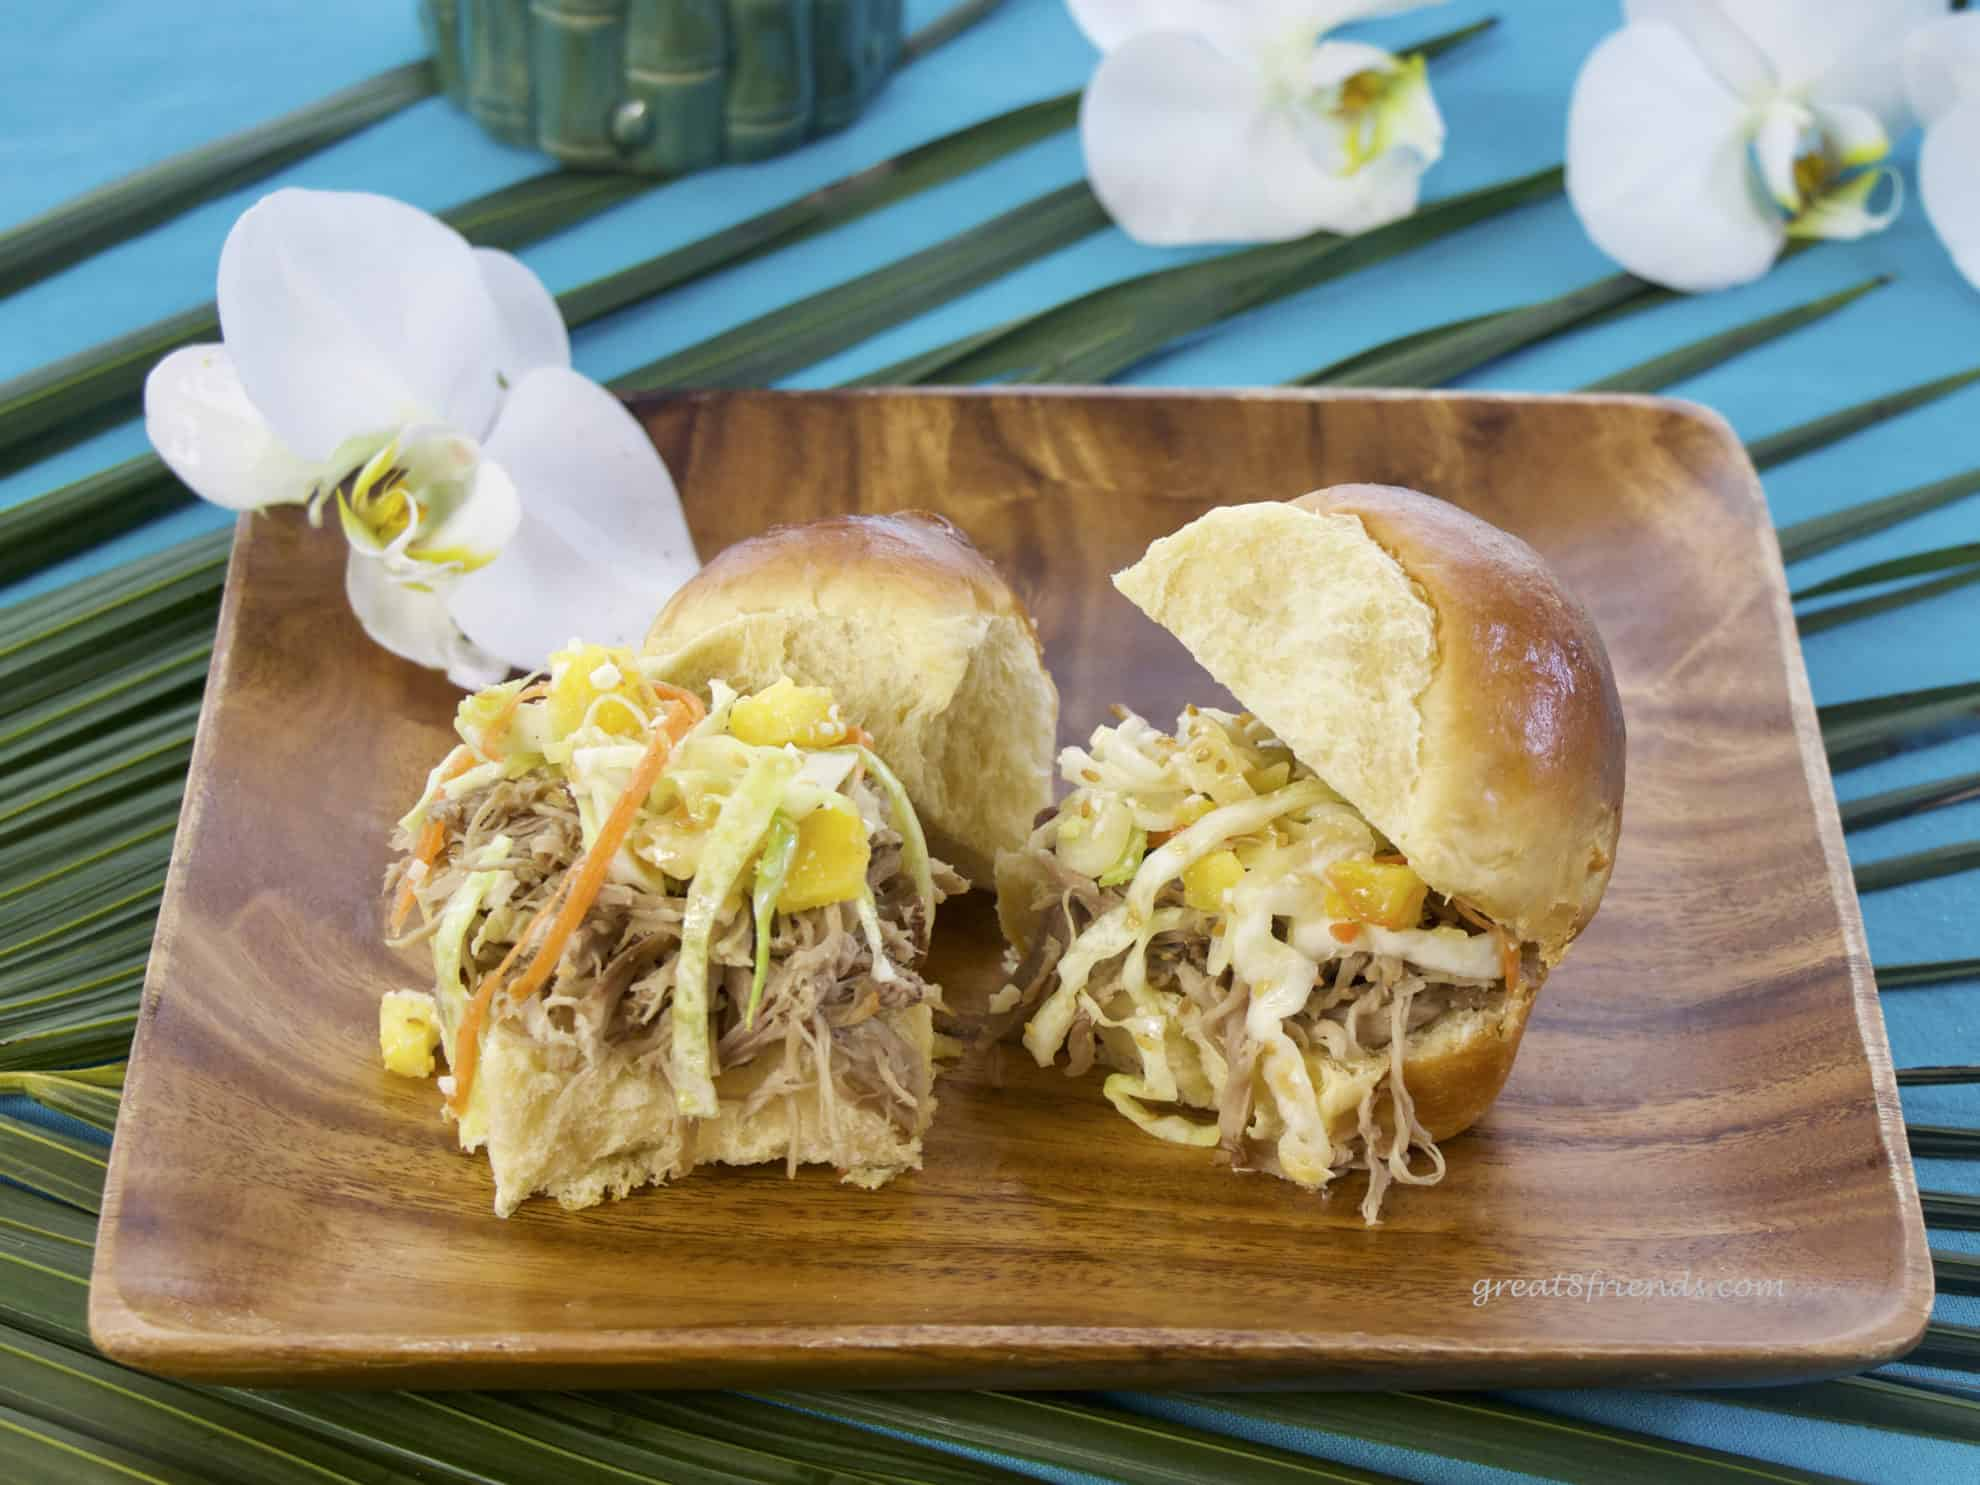 Two pulled pork sandwiches on Hawaiian sweet rolls sitting on a square wooden plate garnished with an orchid.